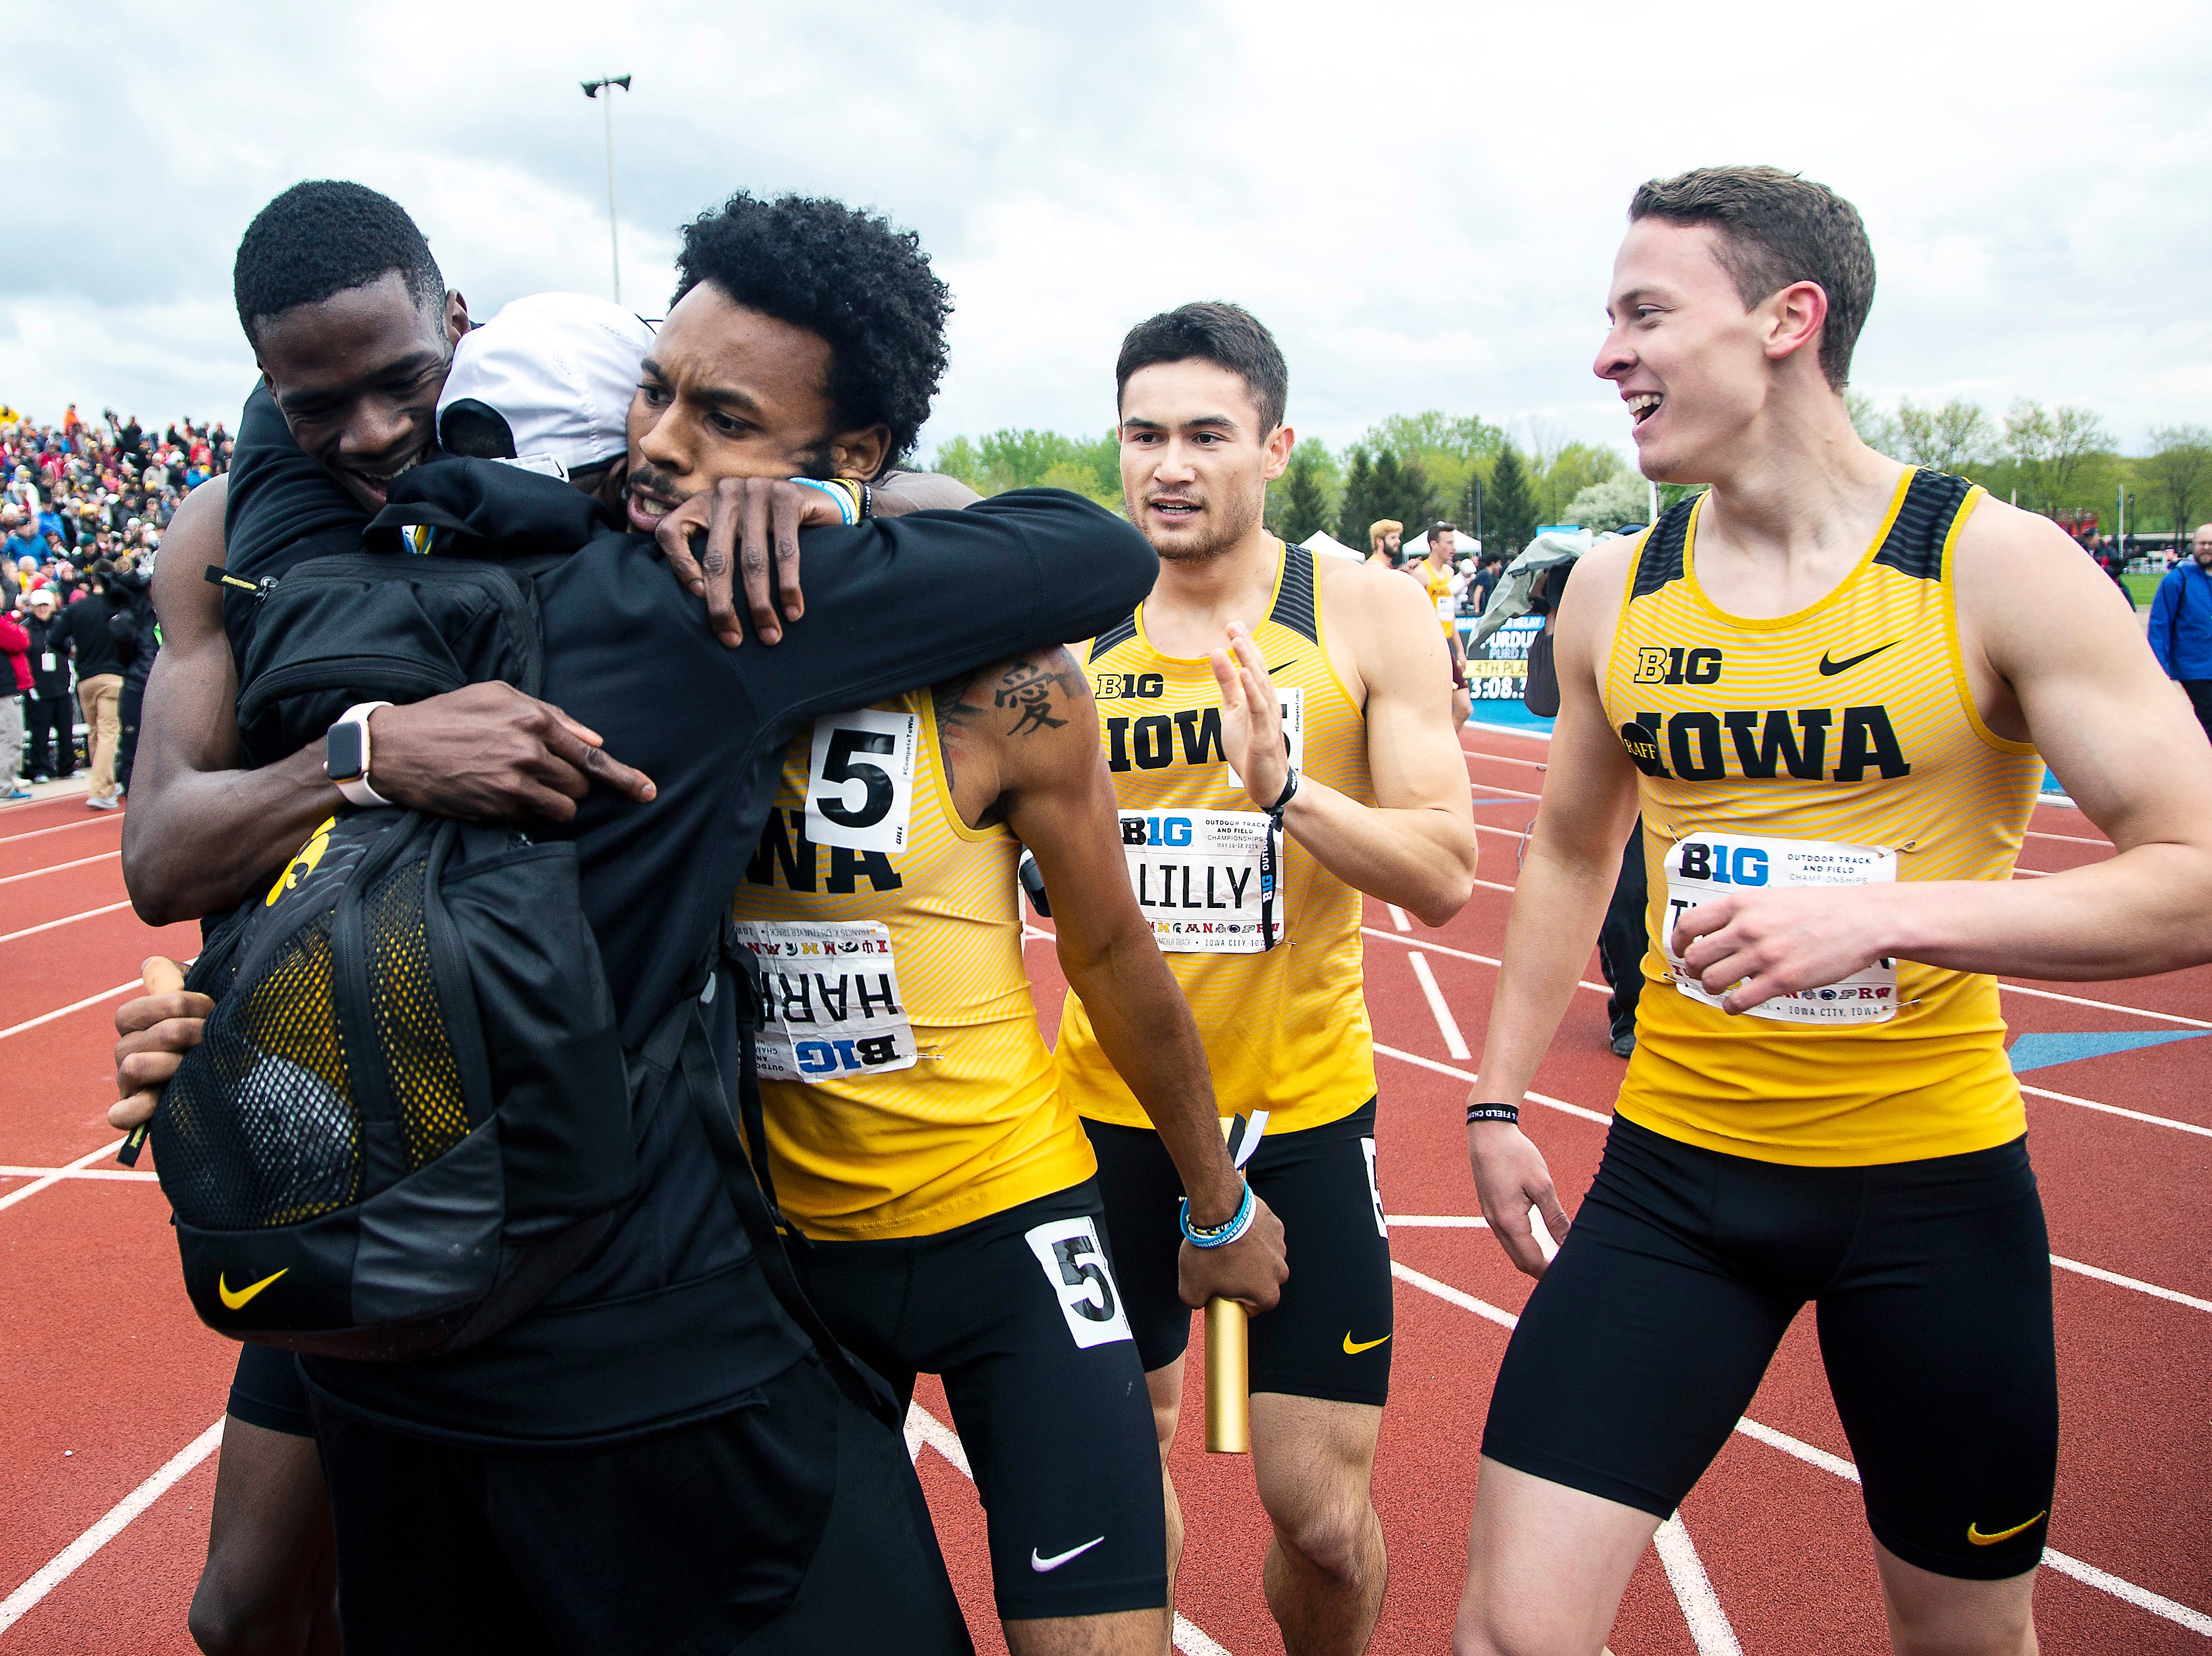 Iowa's Mar'yea Harris gets embraced by teammates after anchoring the 4x400 meter relay during the final day of Big Ten track and field outdoor championships, Sunday, May 12, 2019, at Francis X. Cretzmeyer Track on the University of Iowa campus in Iowa City, Iowa. The Hawkeyes won, with a time of 3:07.36.